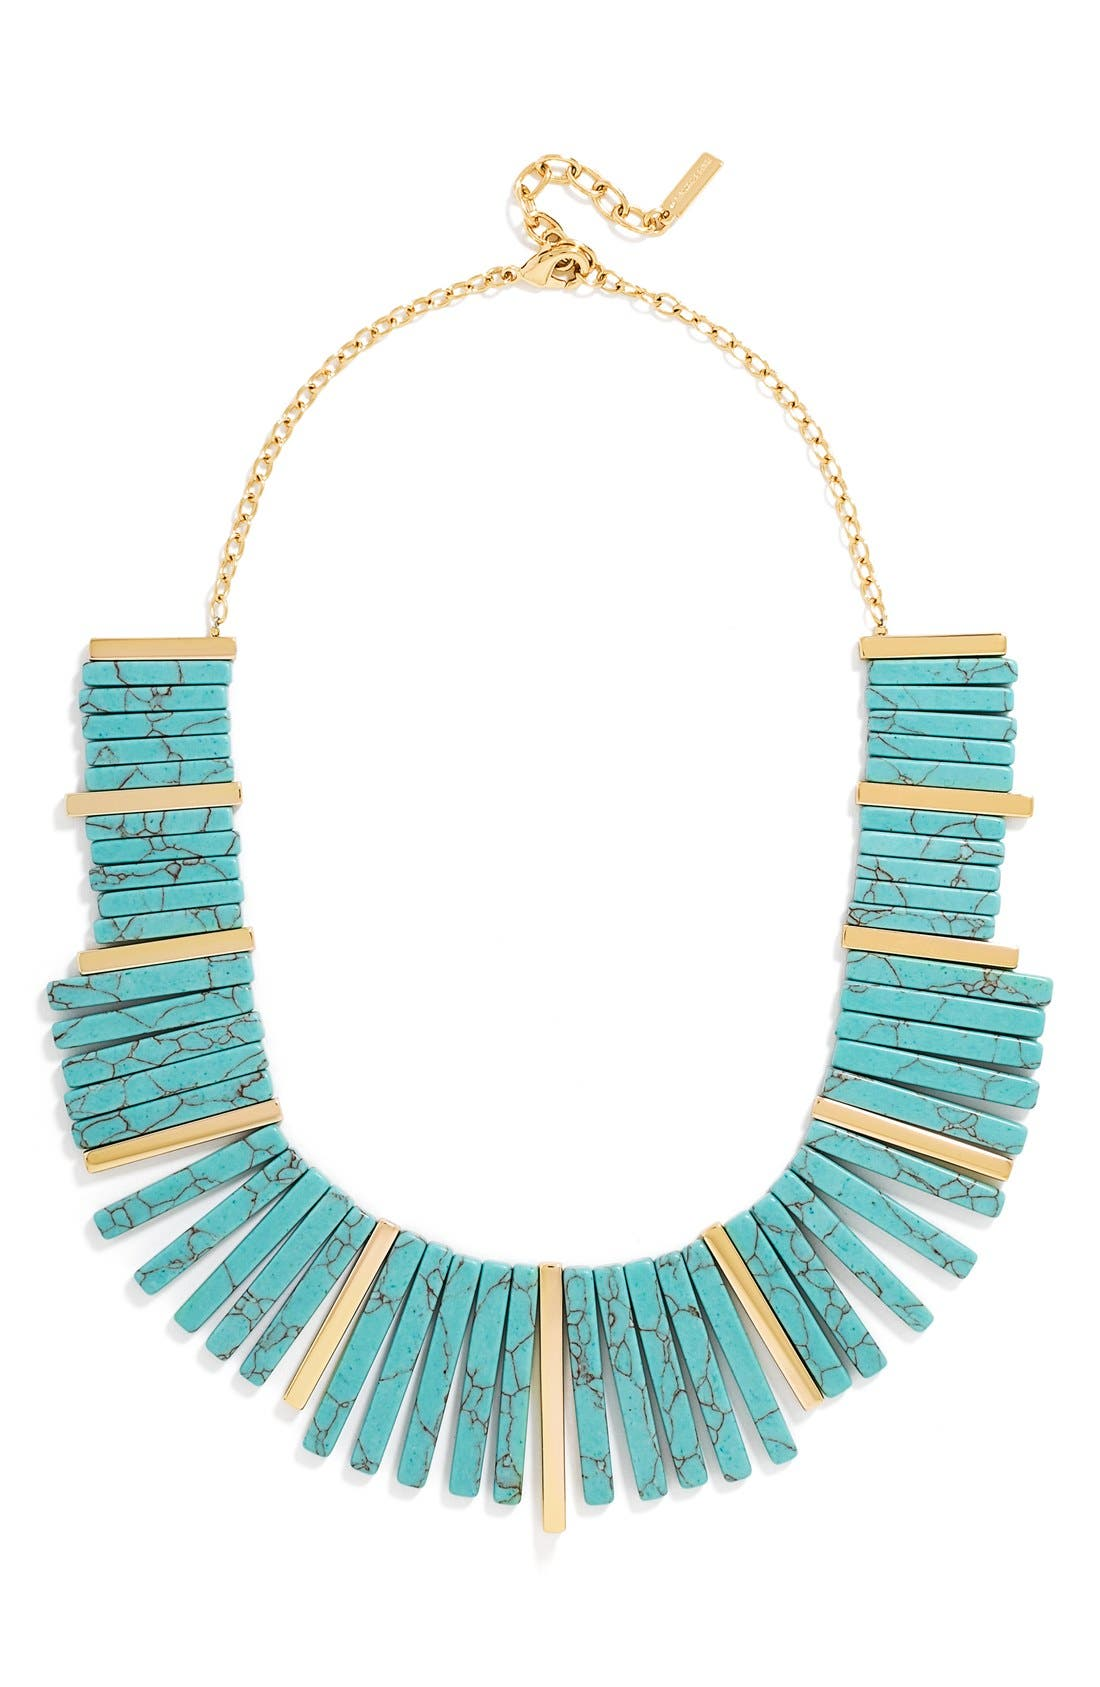 Stone Bib Necklace,                             Main thumbnail 1, color,                             Gold/ Turquoise